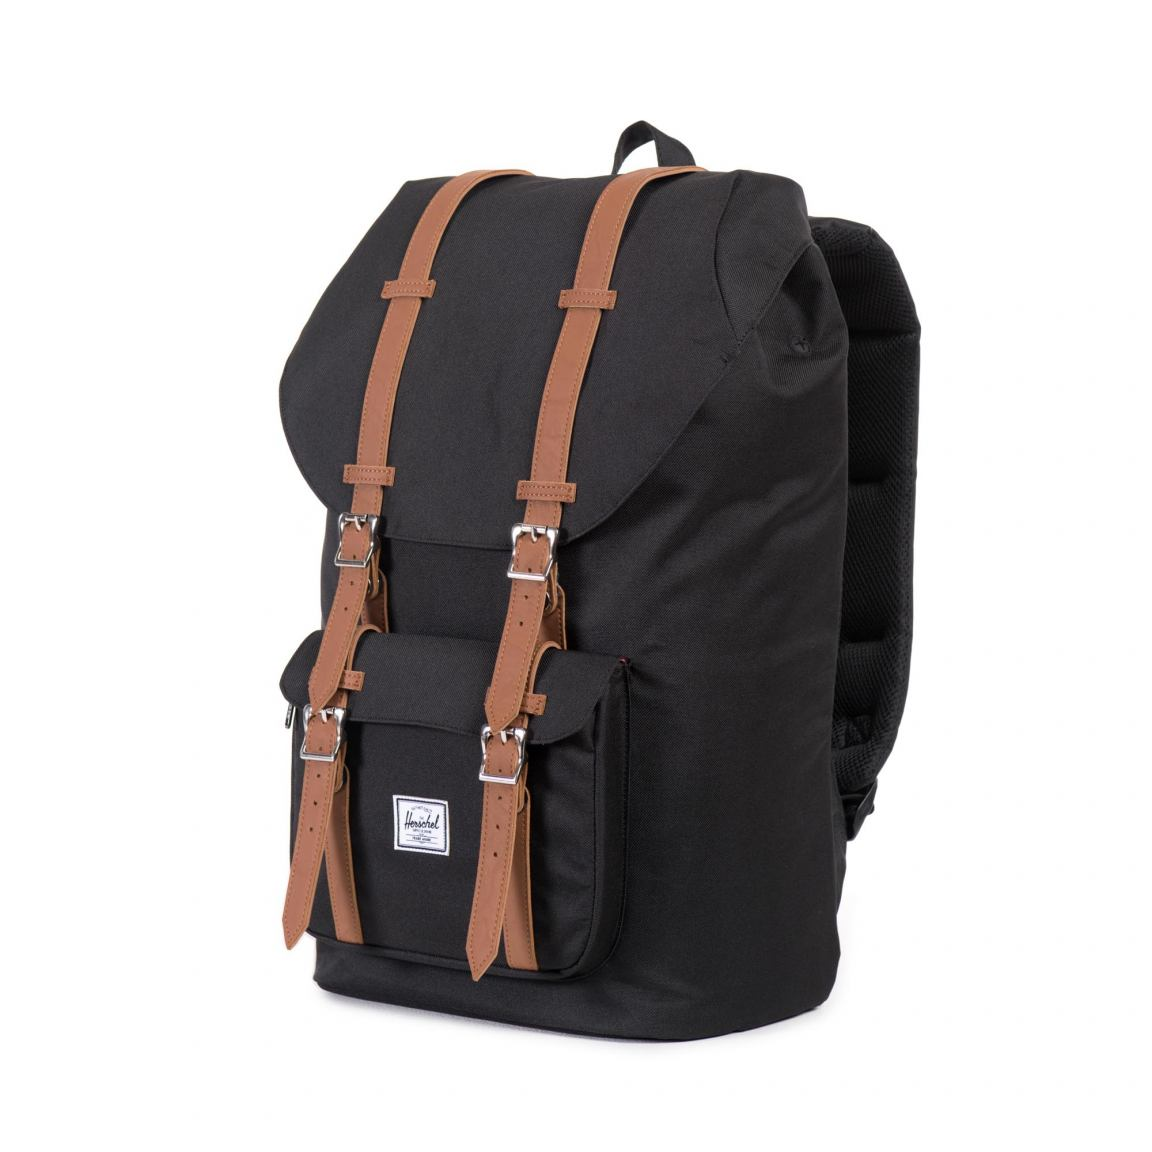 herschel schulrucksack little america schwarz braun bags. Black Bedroom Furniture Sets. Home Design Ideas